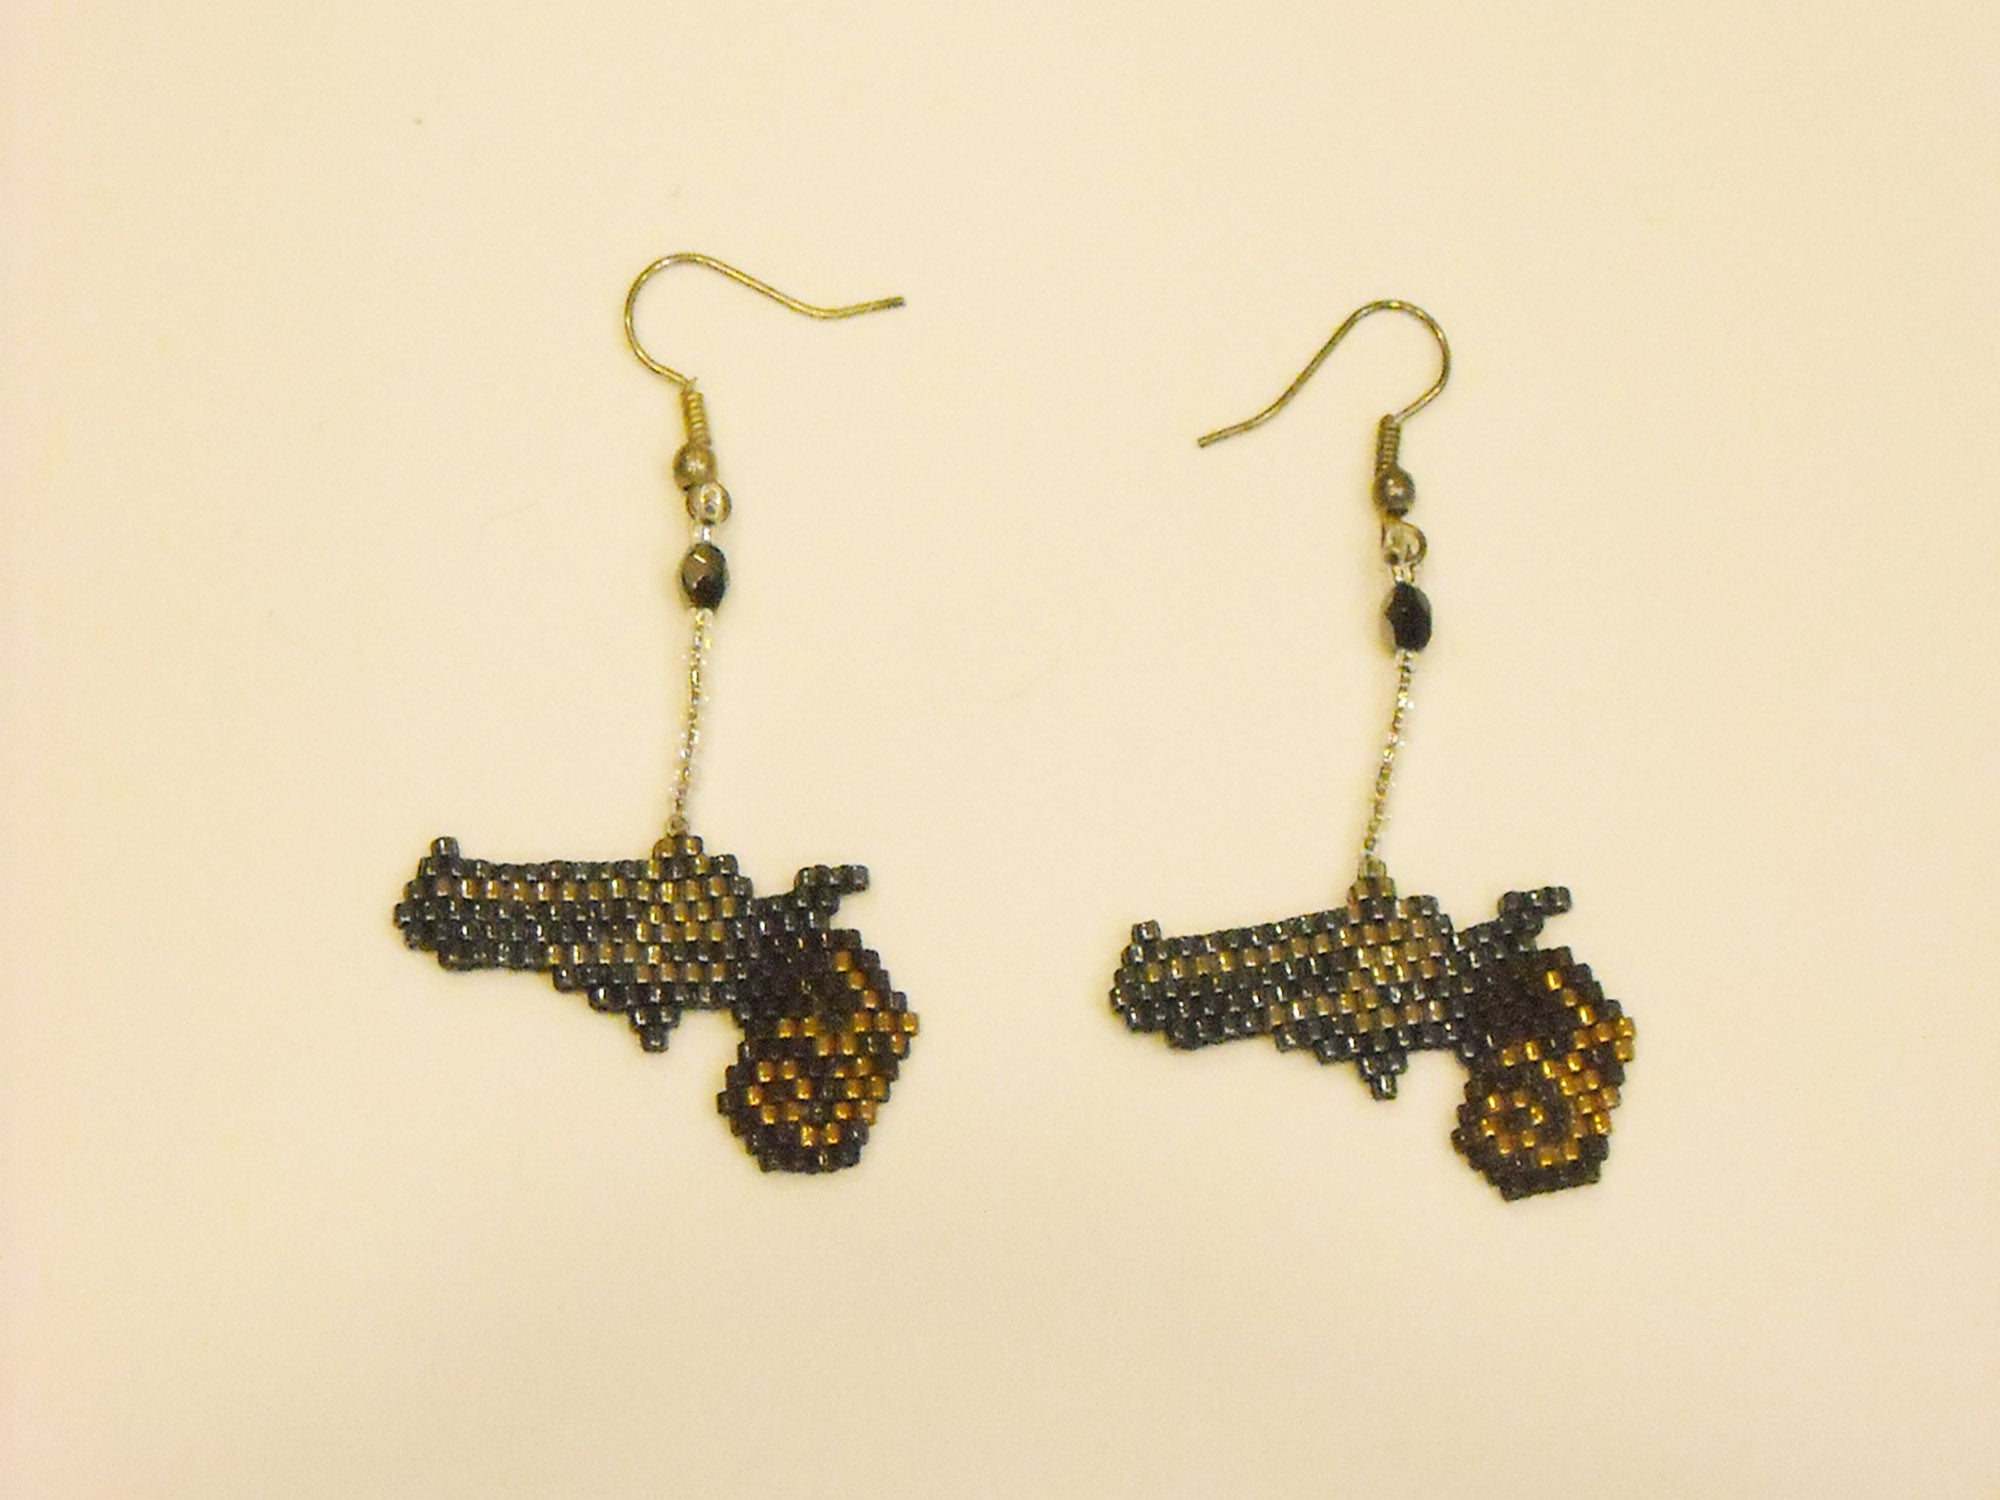 Handbeaded Metallic Gun Earrings